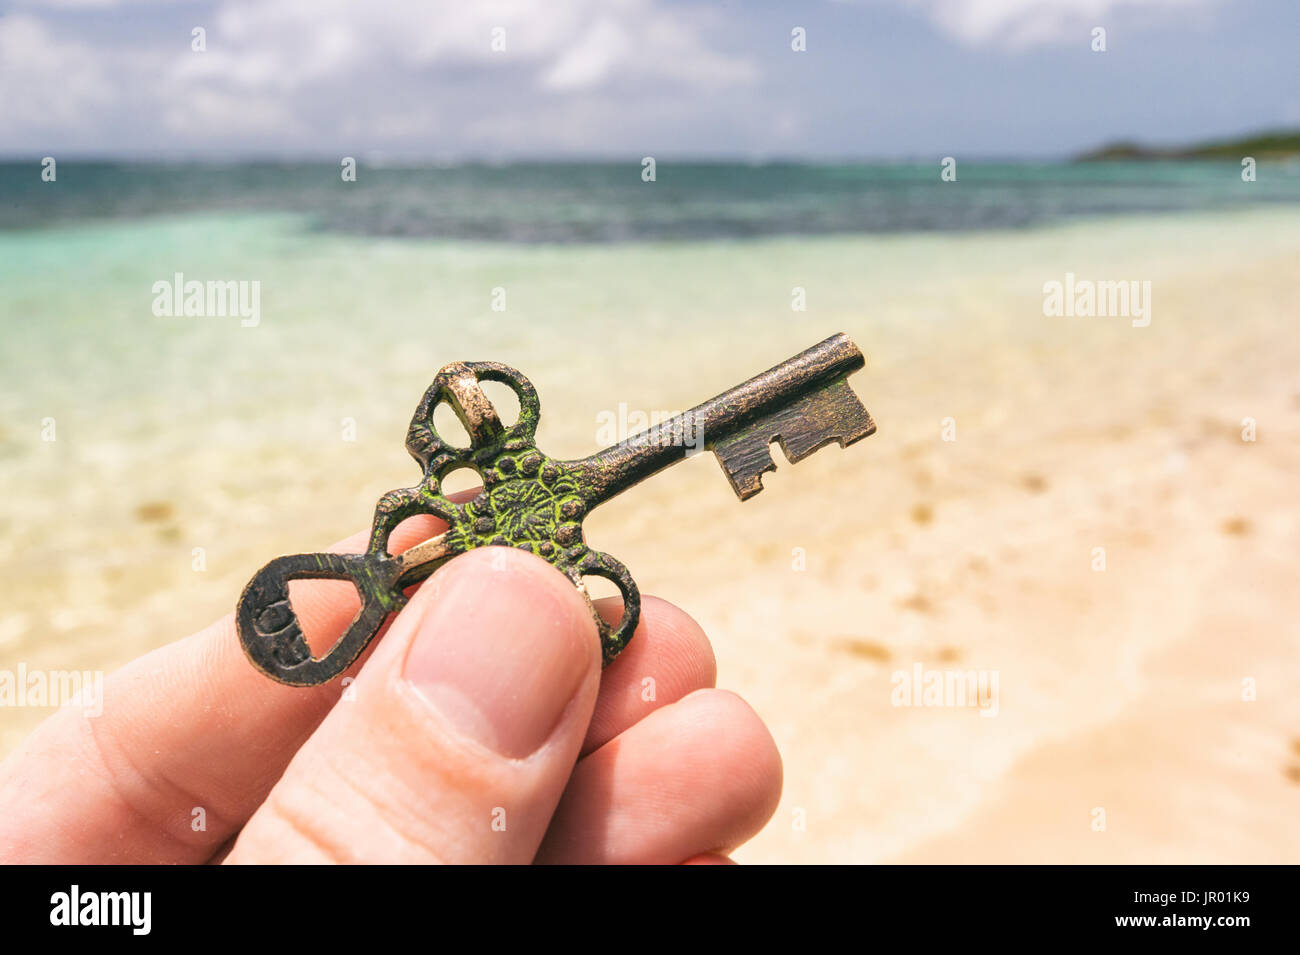 Hand holding a Treasure key found on a tropical beach. Opportunity or Mystery concept. - Stock Image